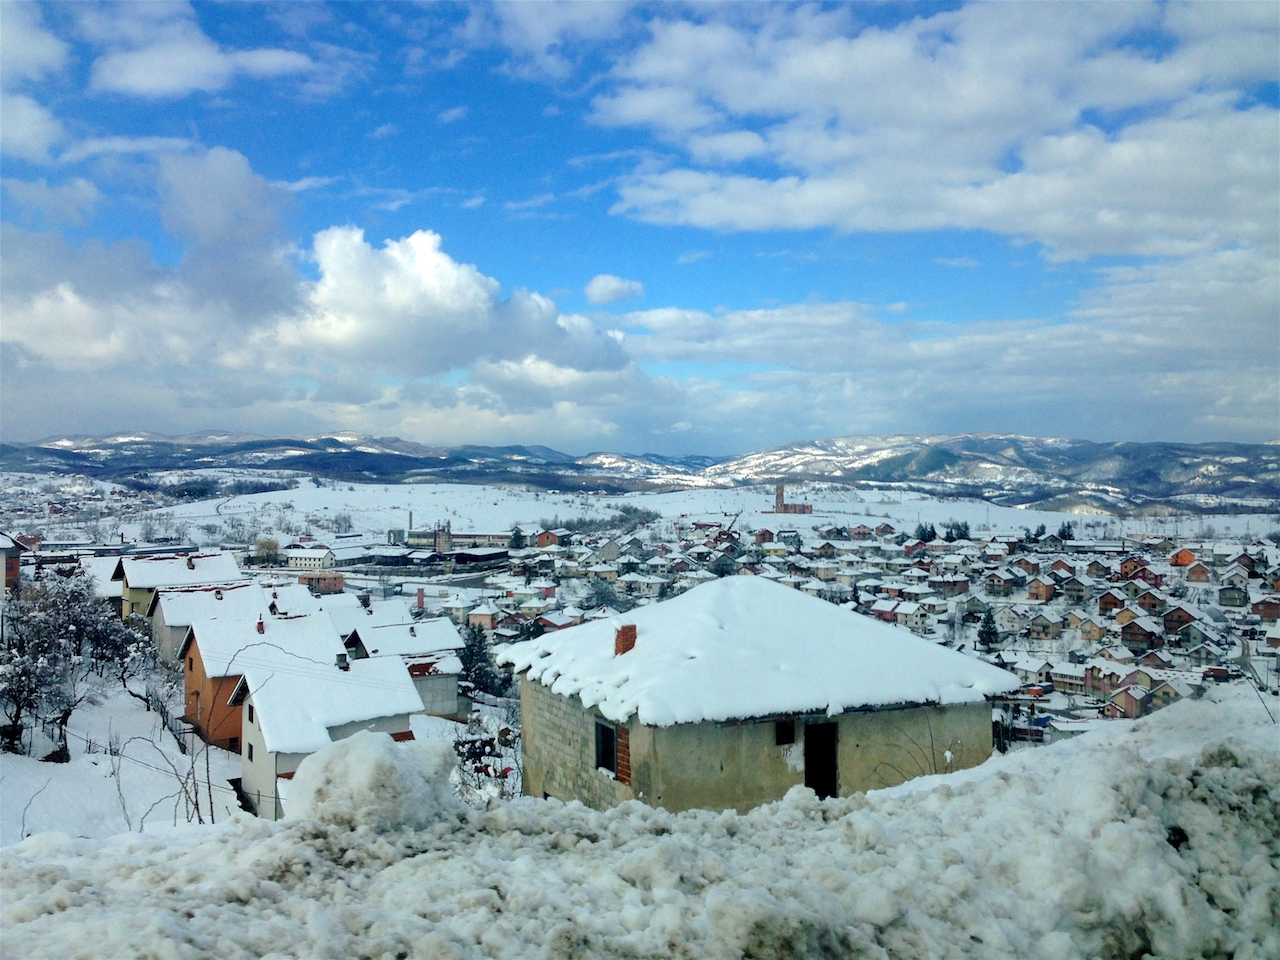 Bosnia in winter is truly stunning